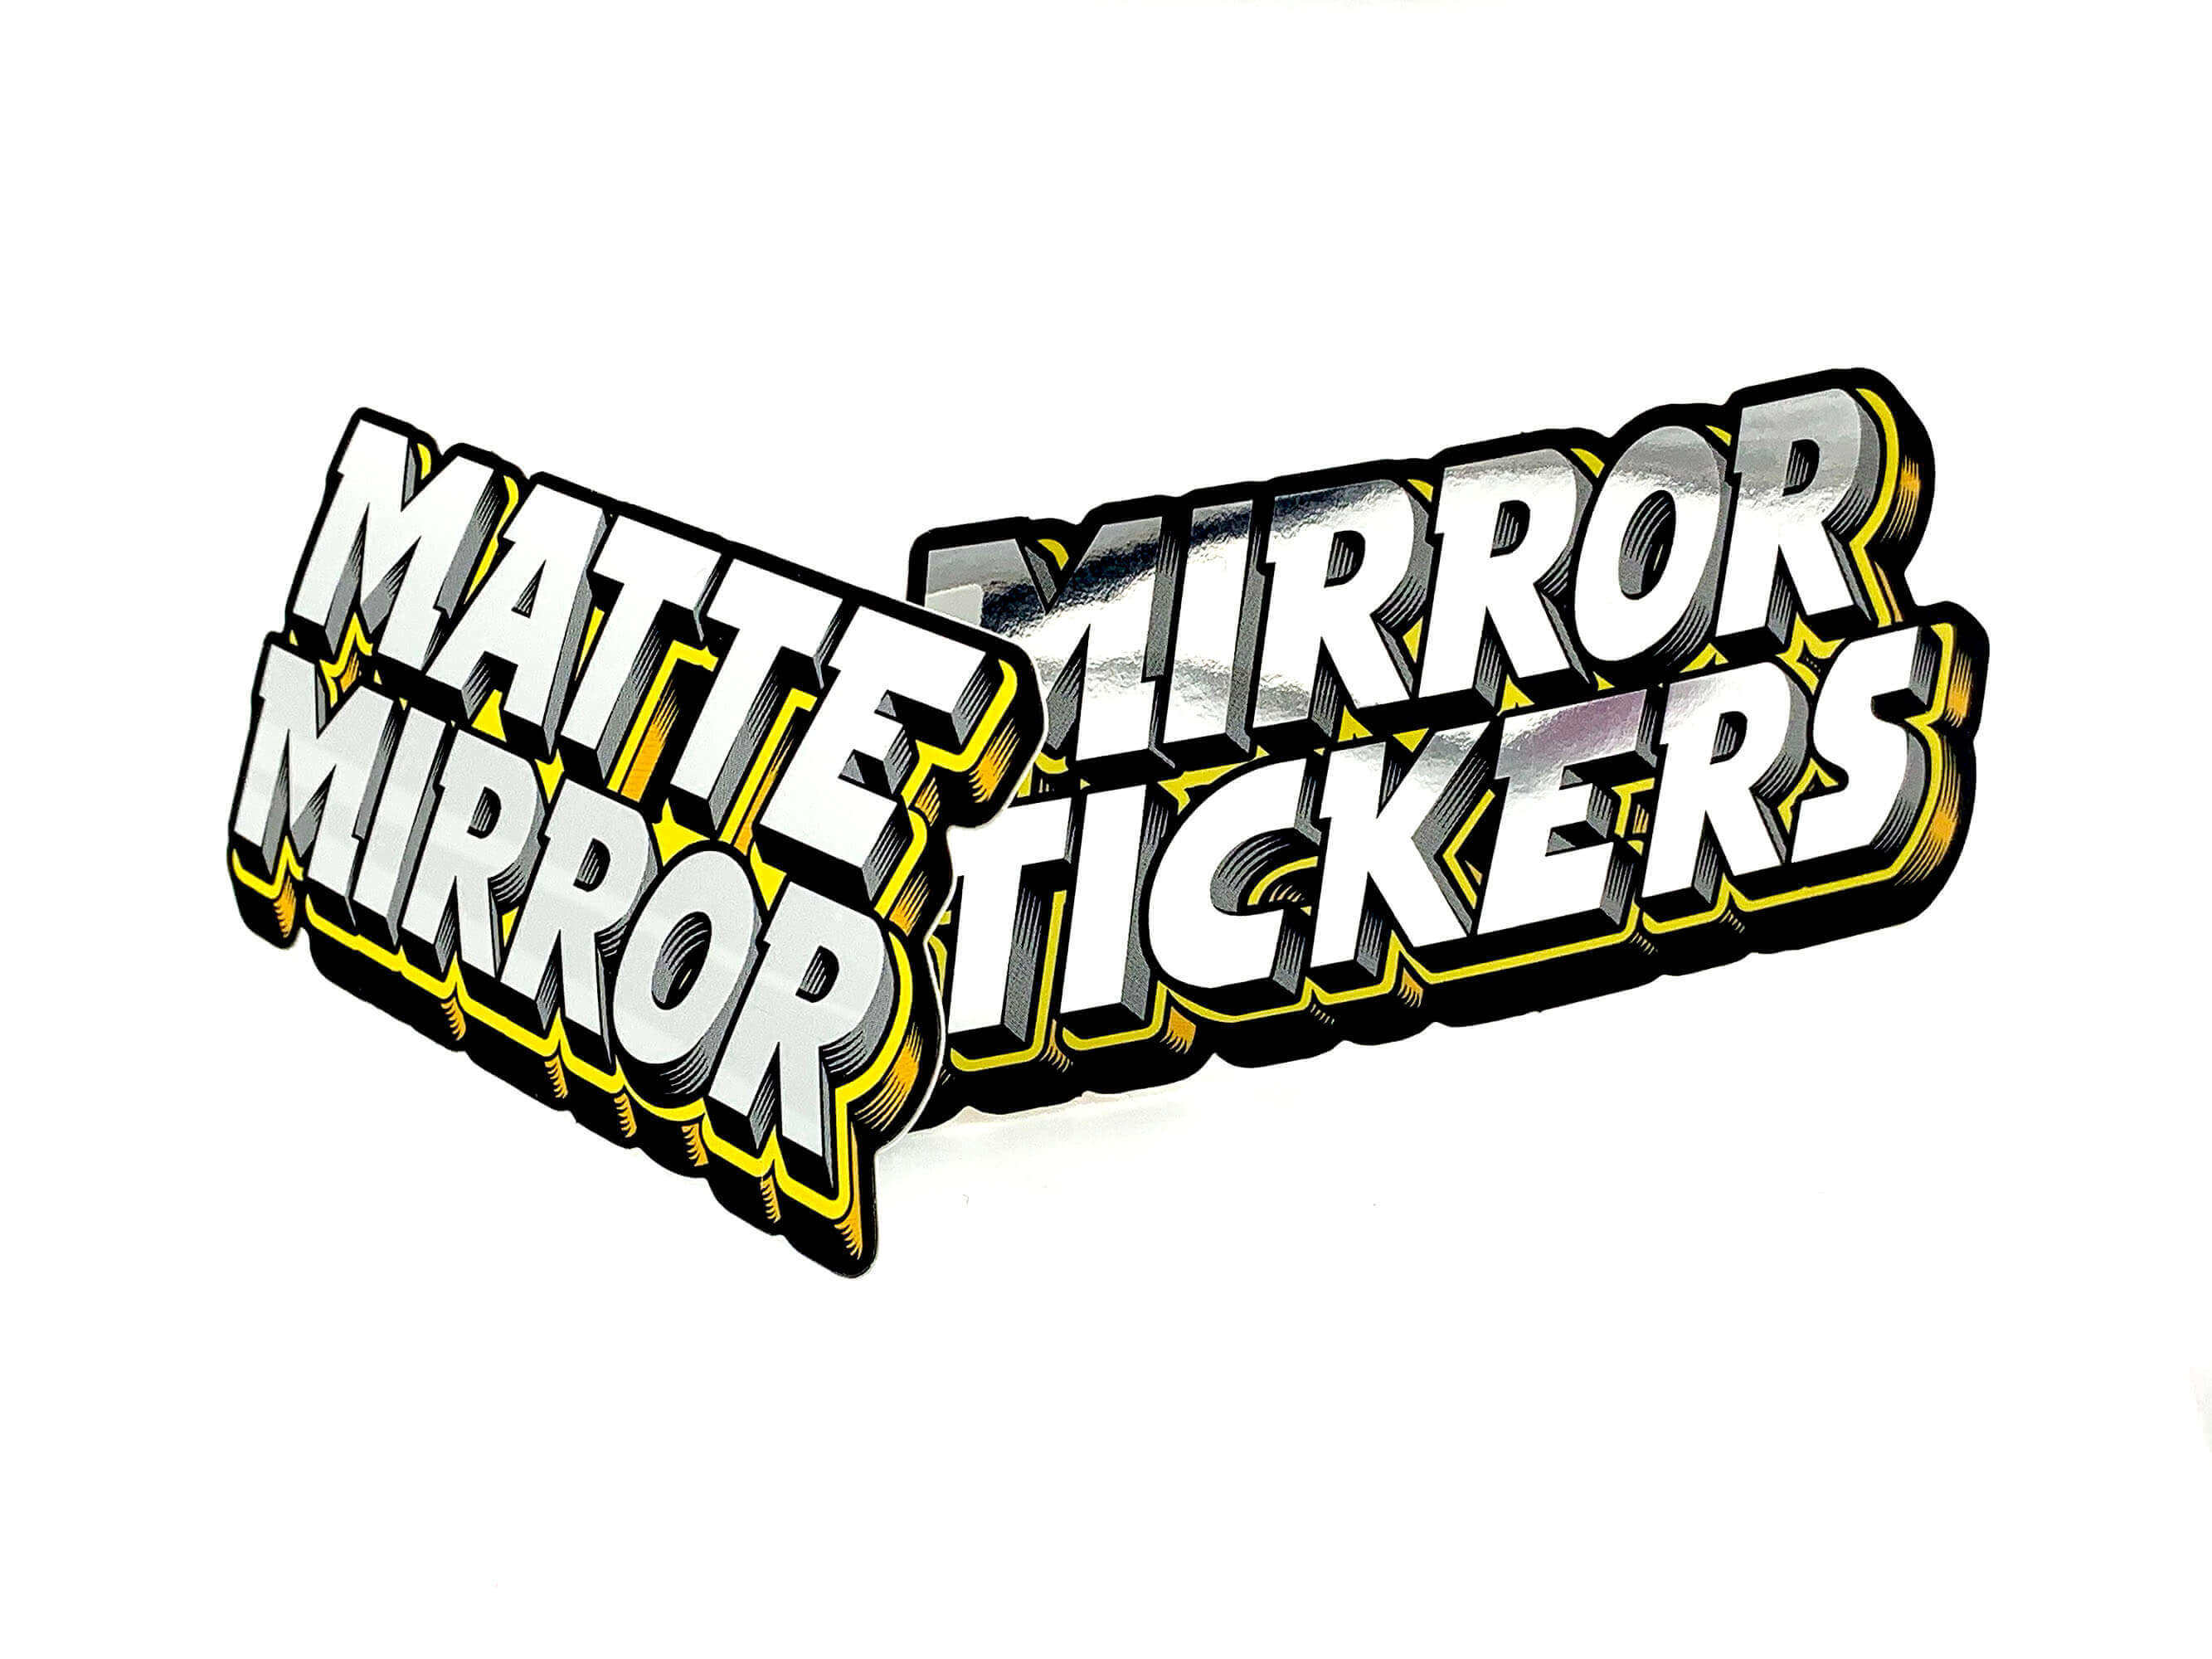 Glossy Silver Foil Sticker VS Matte Silver Foil Sticker on our Mirror Material